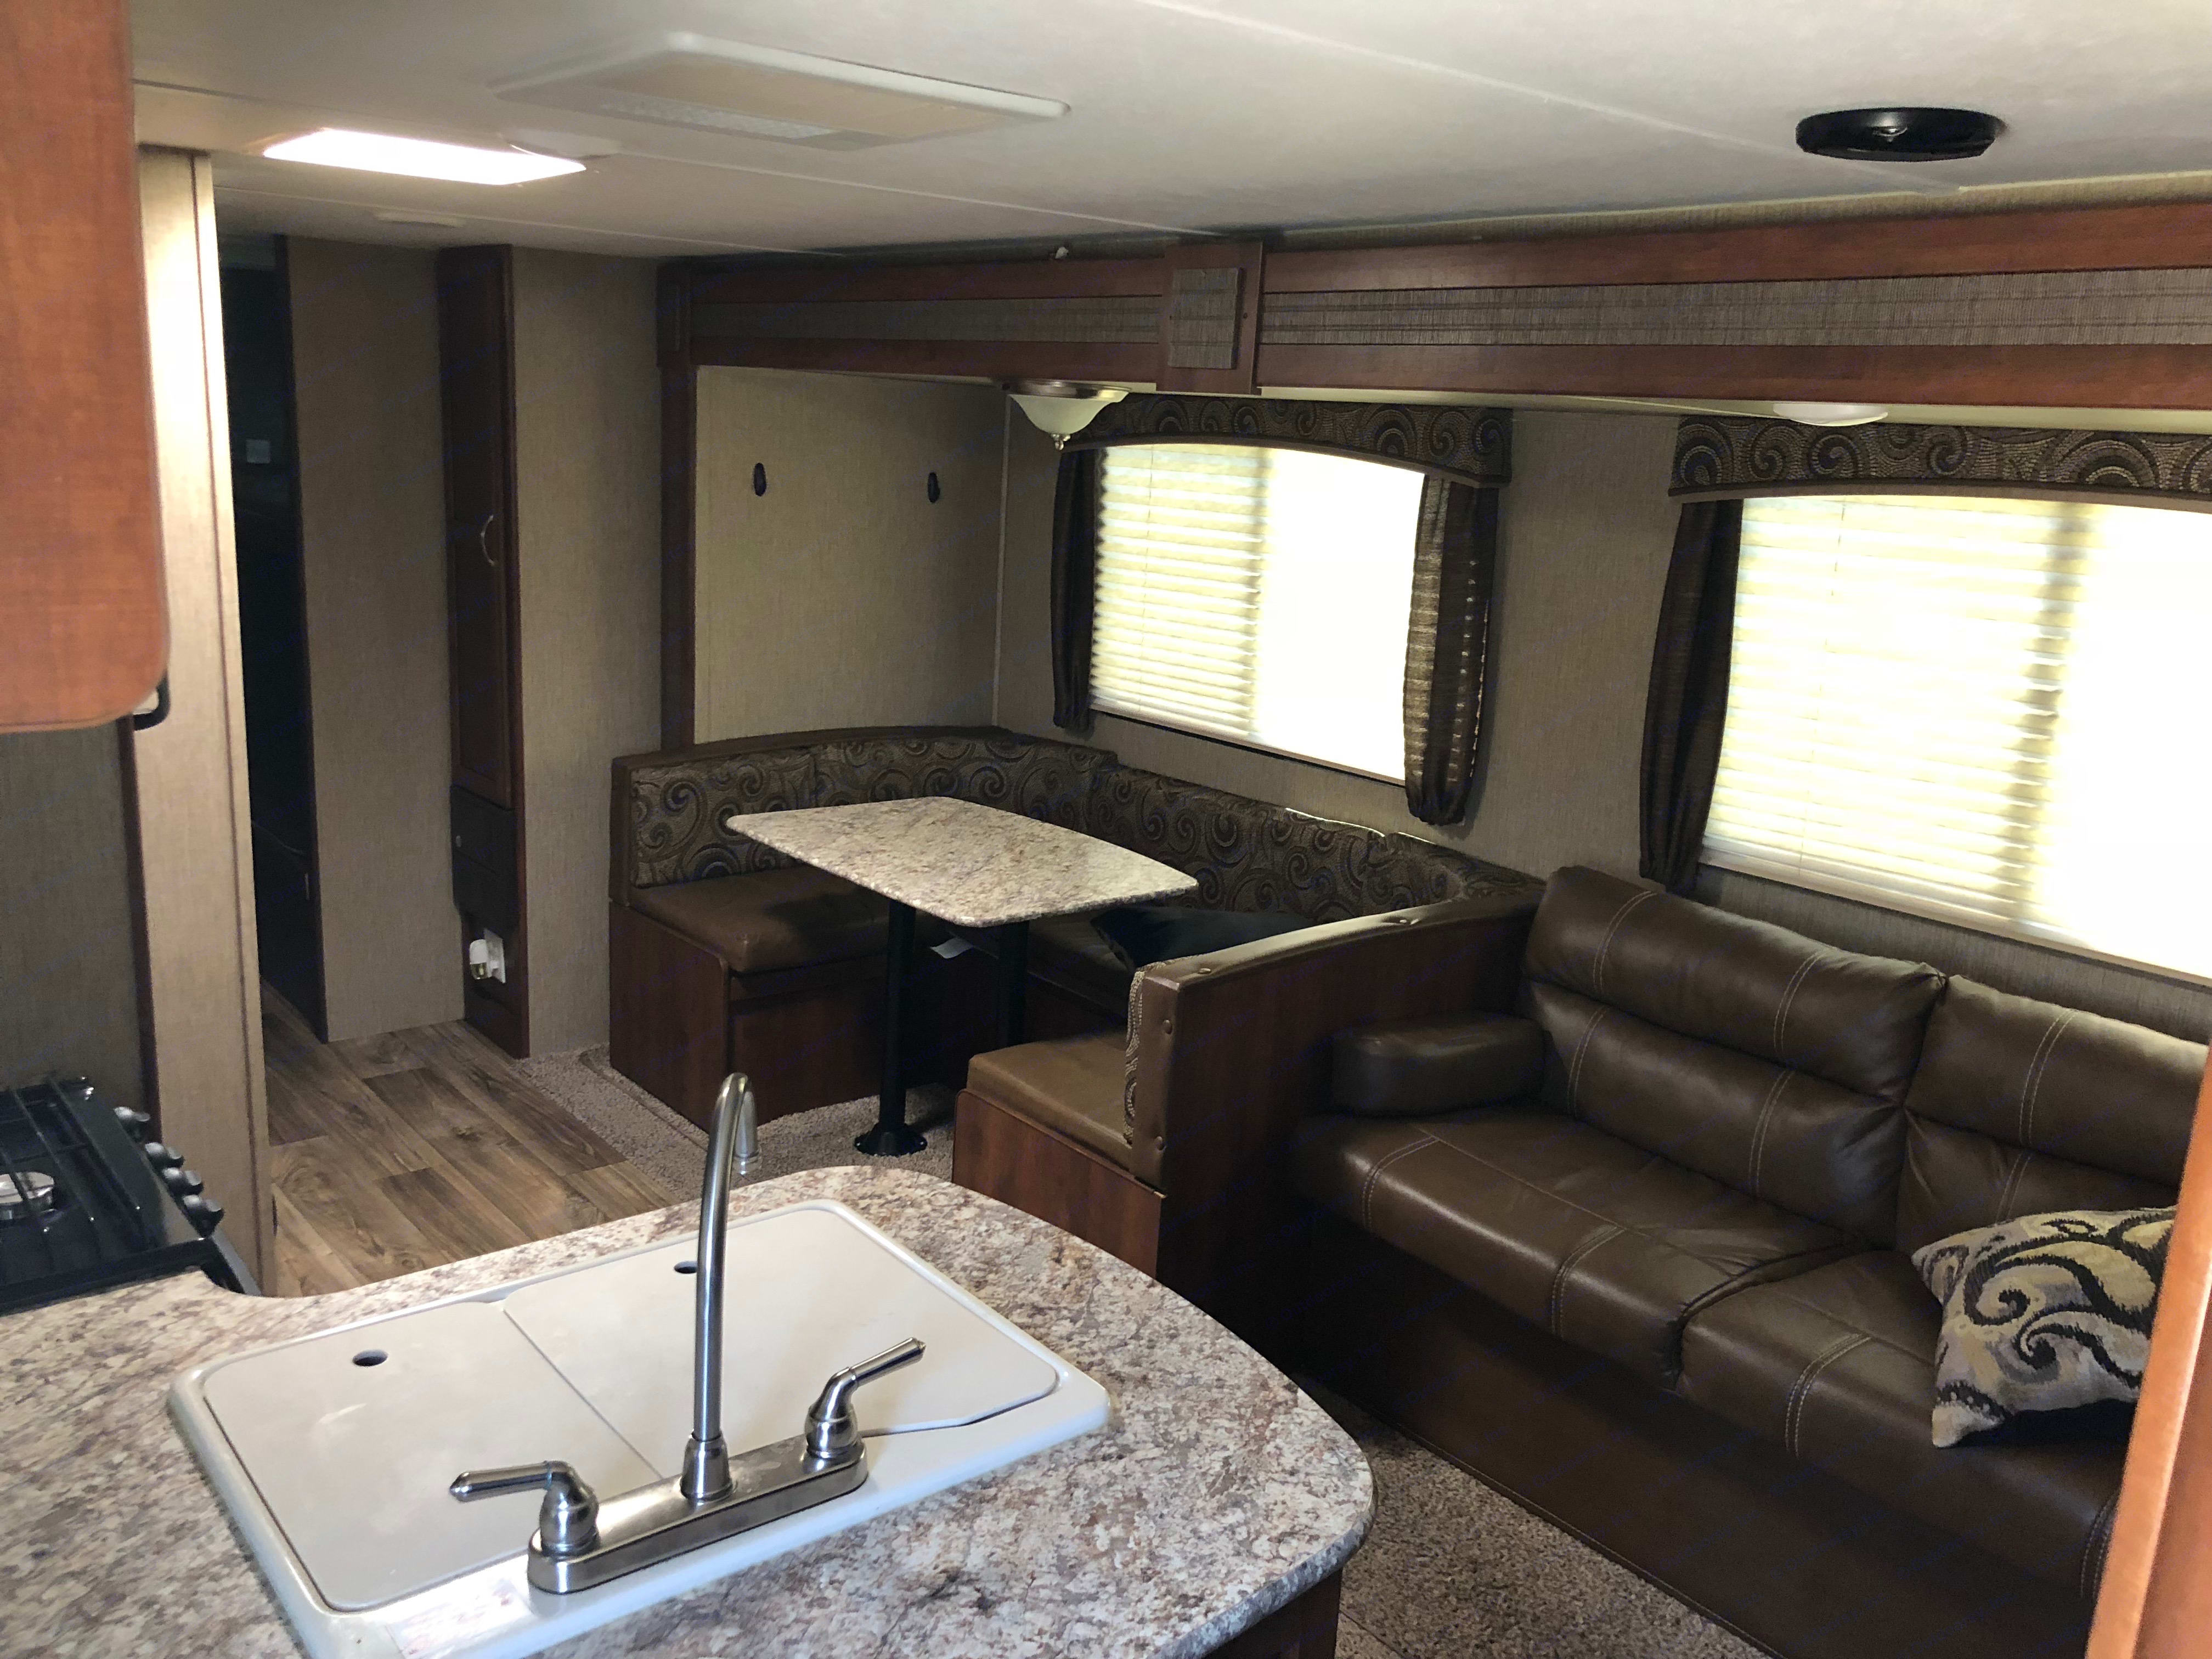 U shaped dinning table (folds down into a bed) and couch (folds down into a bed). . Keystone Passport 2017